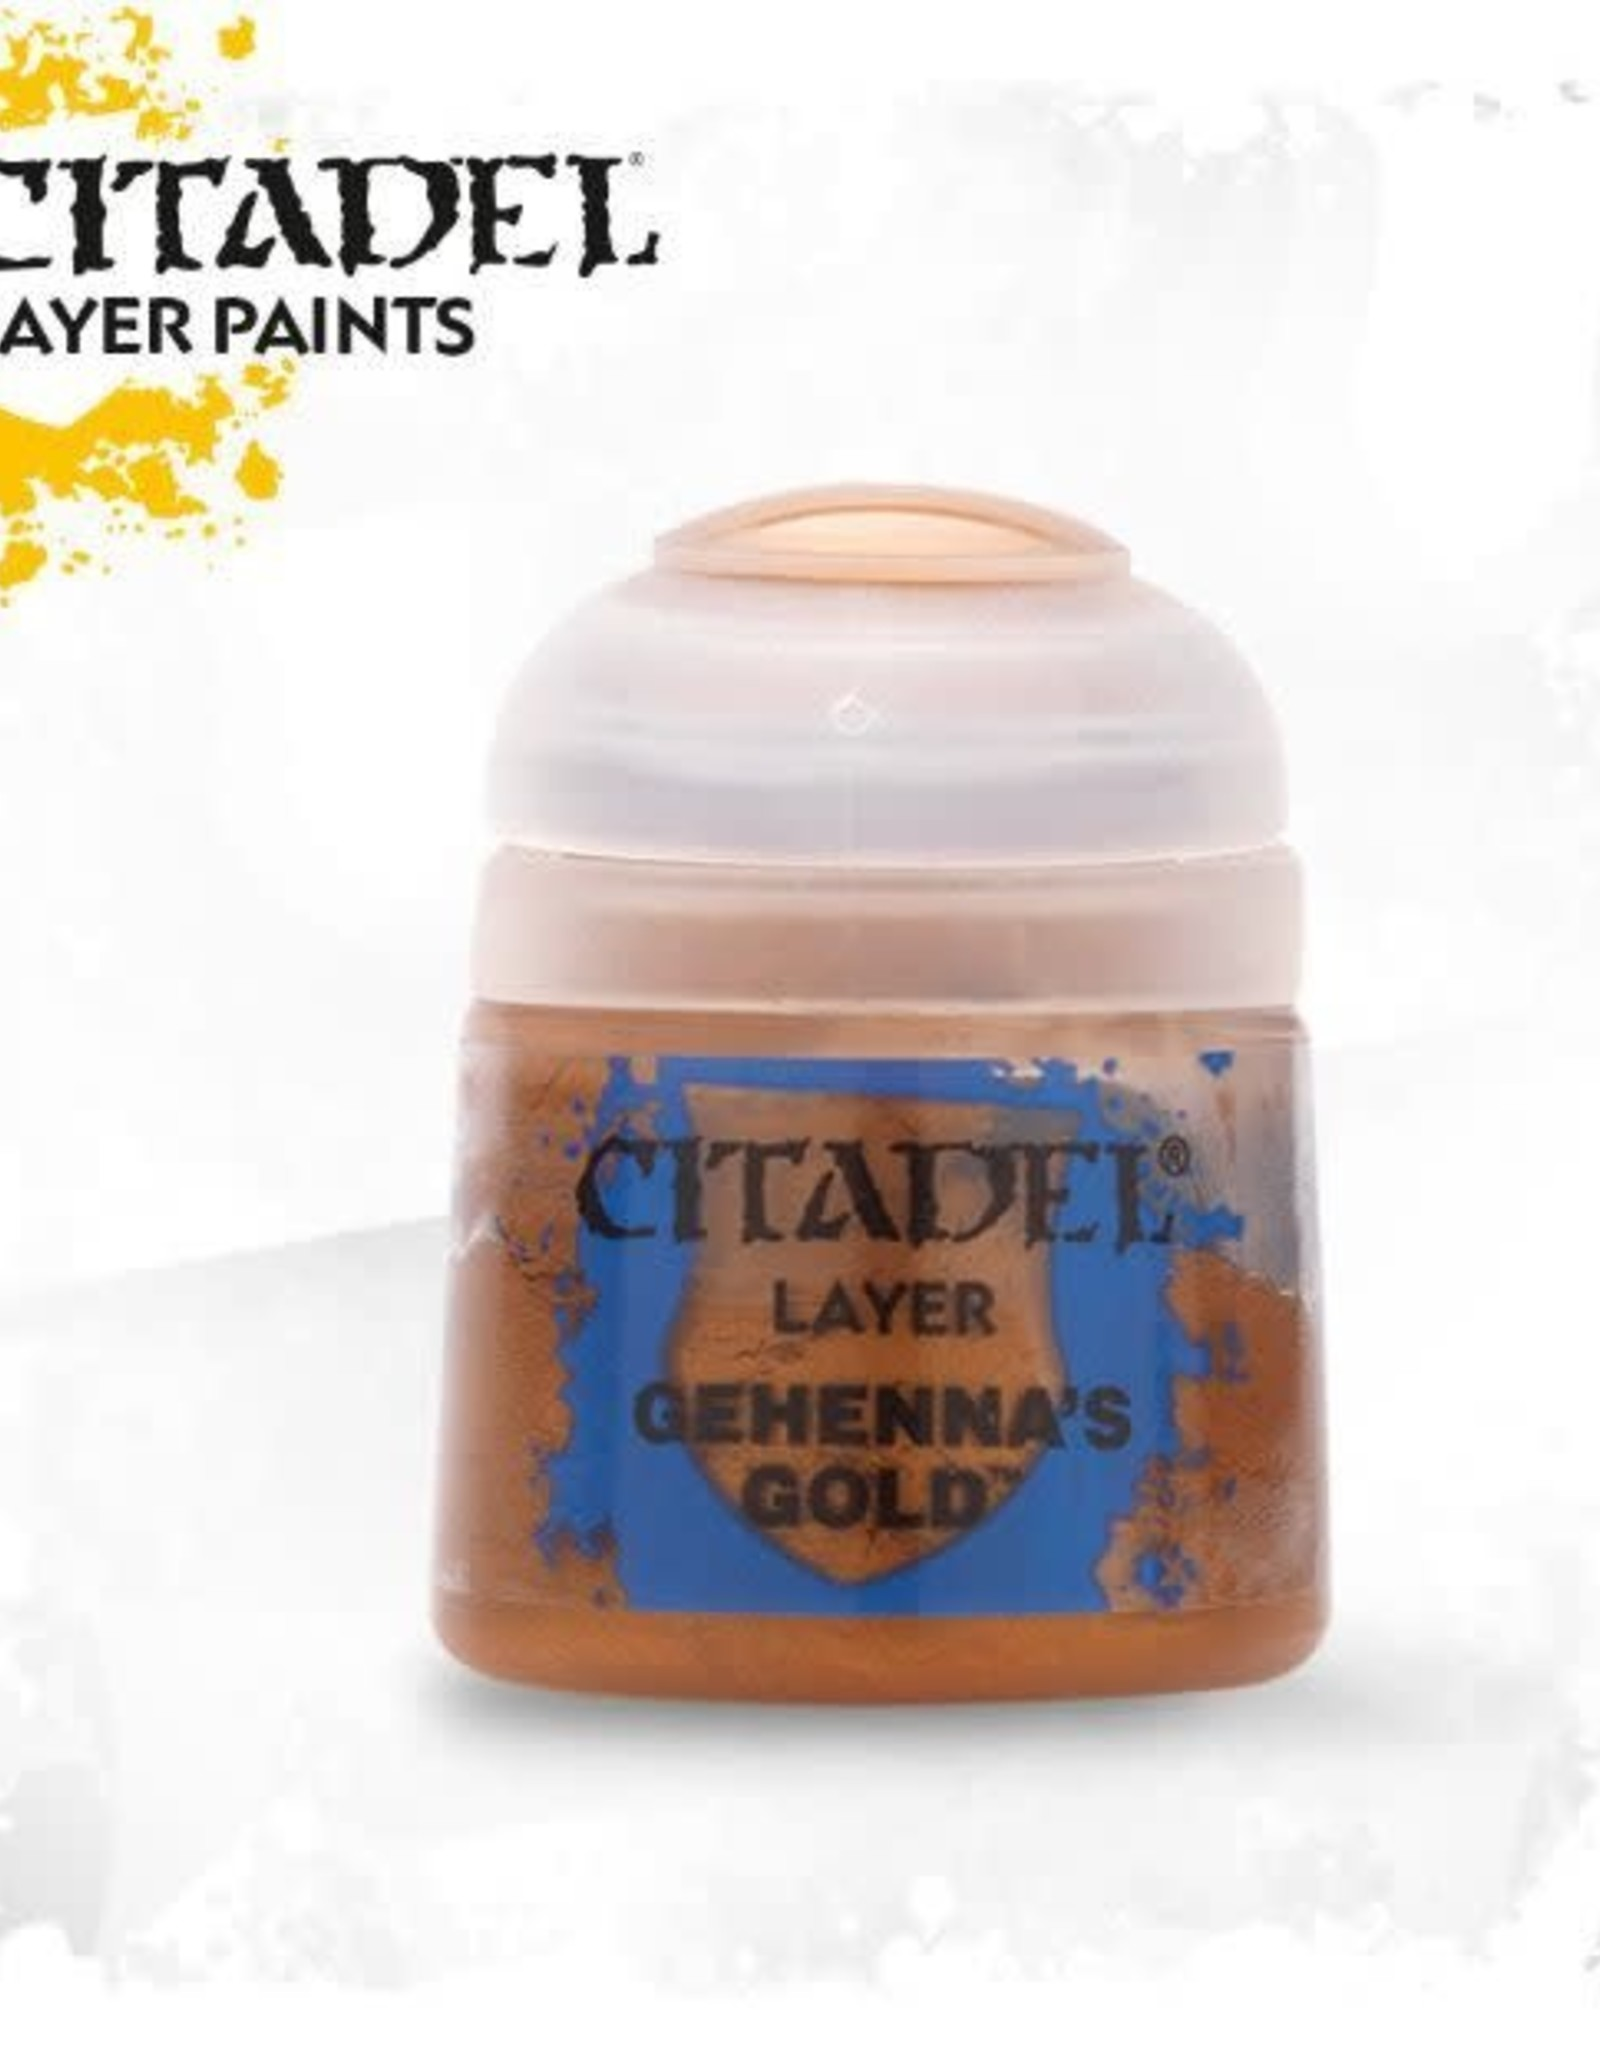 Games Workshop Citadel Paint: Layer - Gehennas Gold